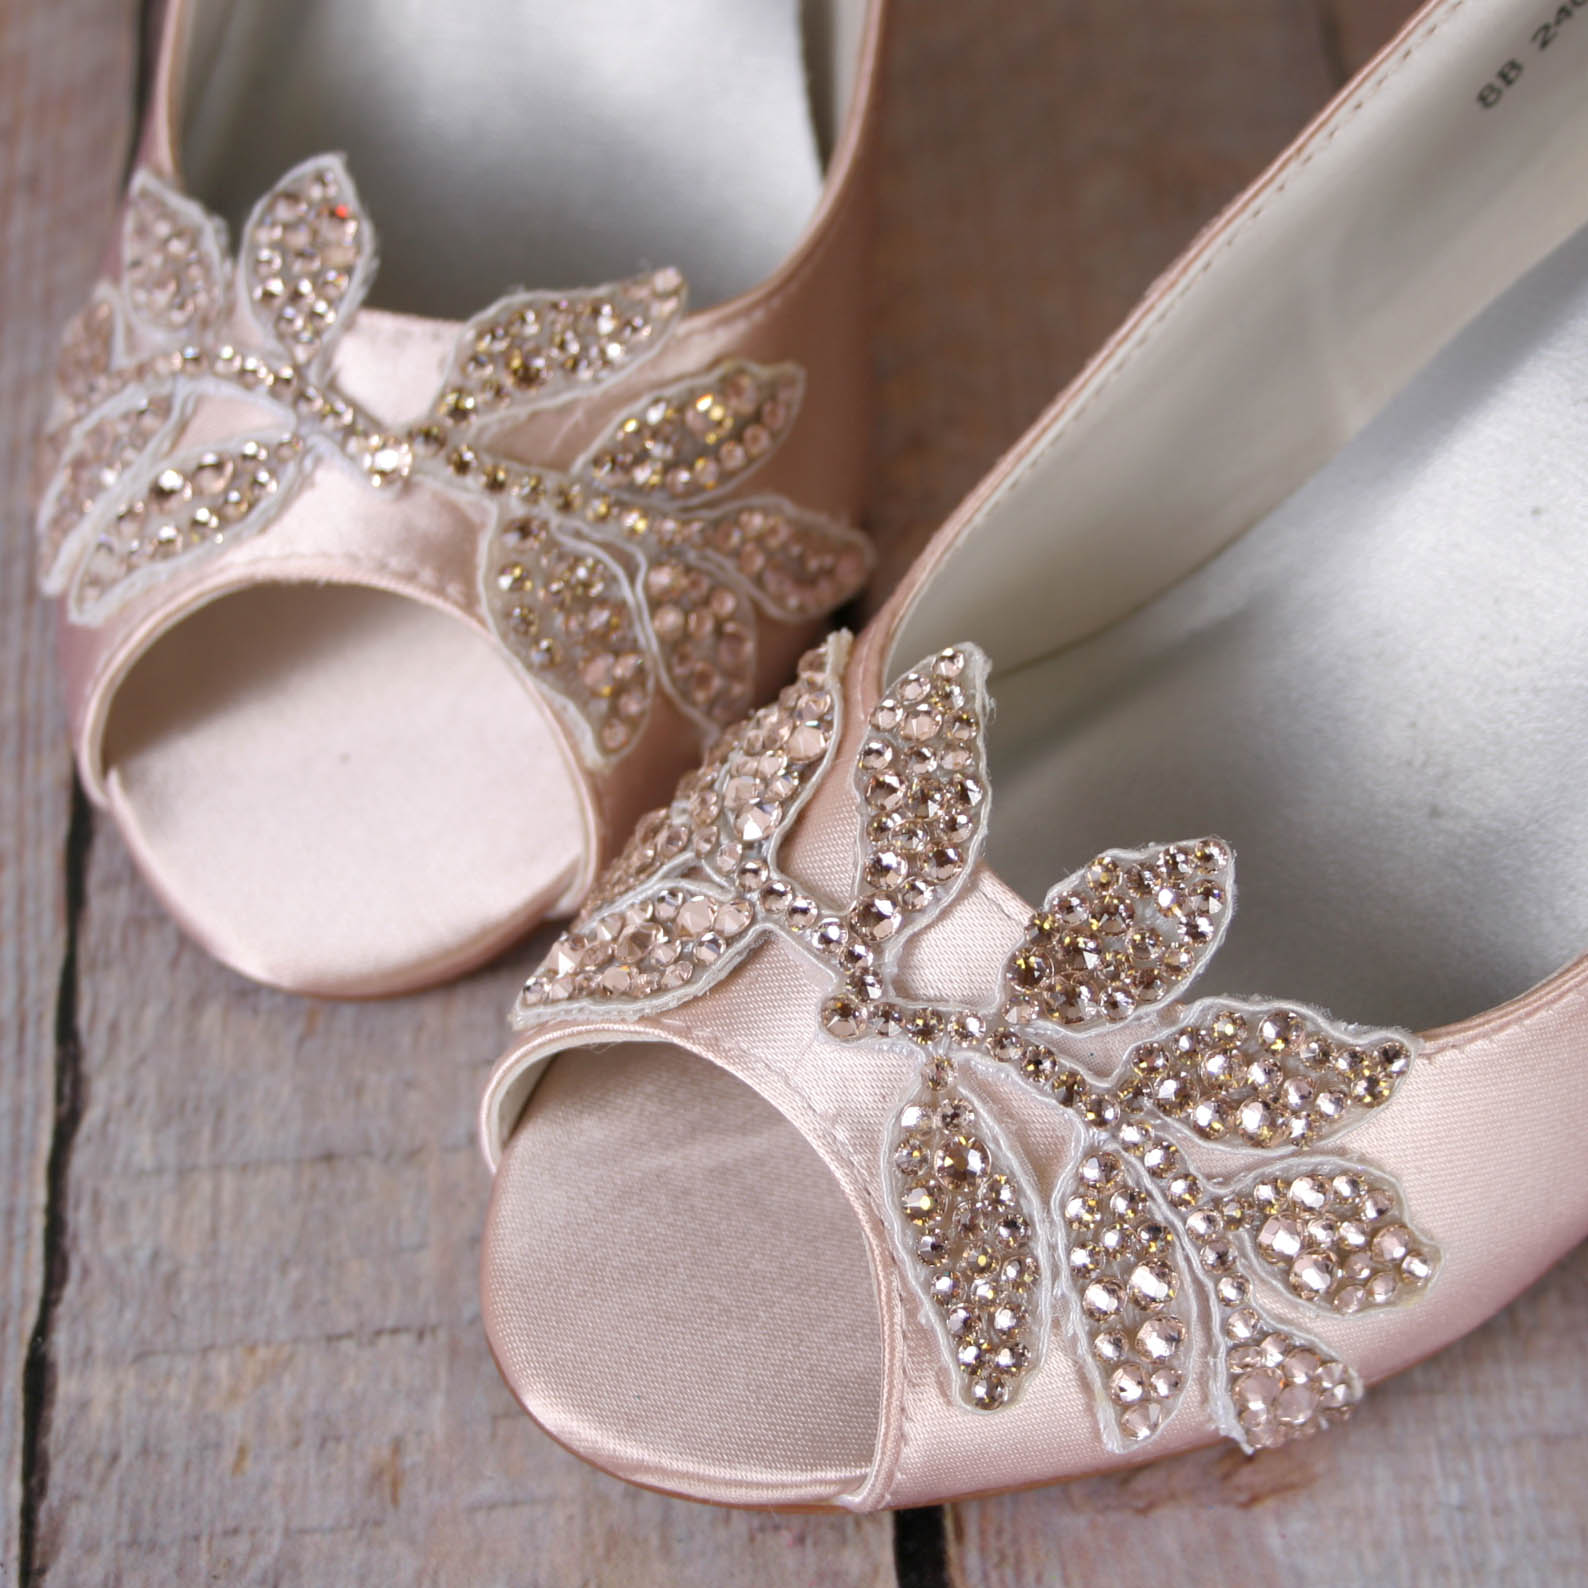 Custom Blush Wedge Wedding Shoes with Swarovski Crystal Leaves Custom Wedding Shoes by Ellie Wren